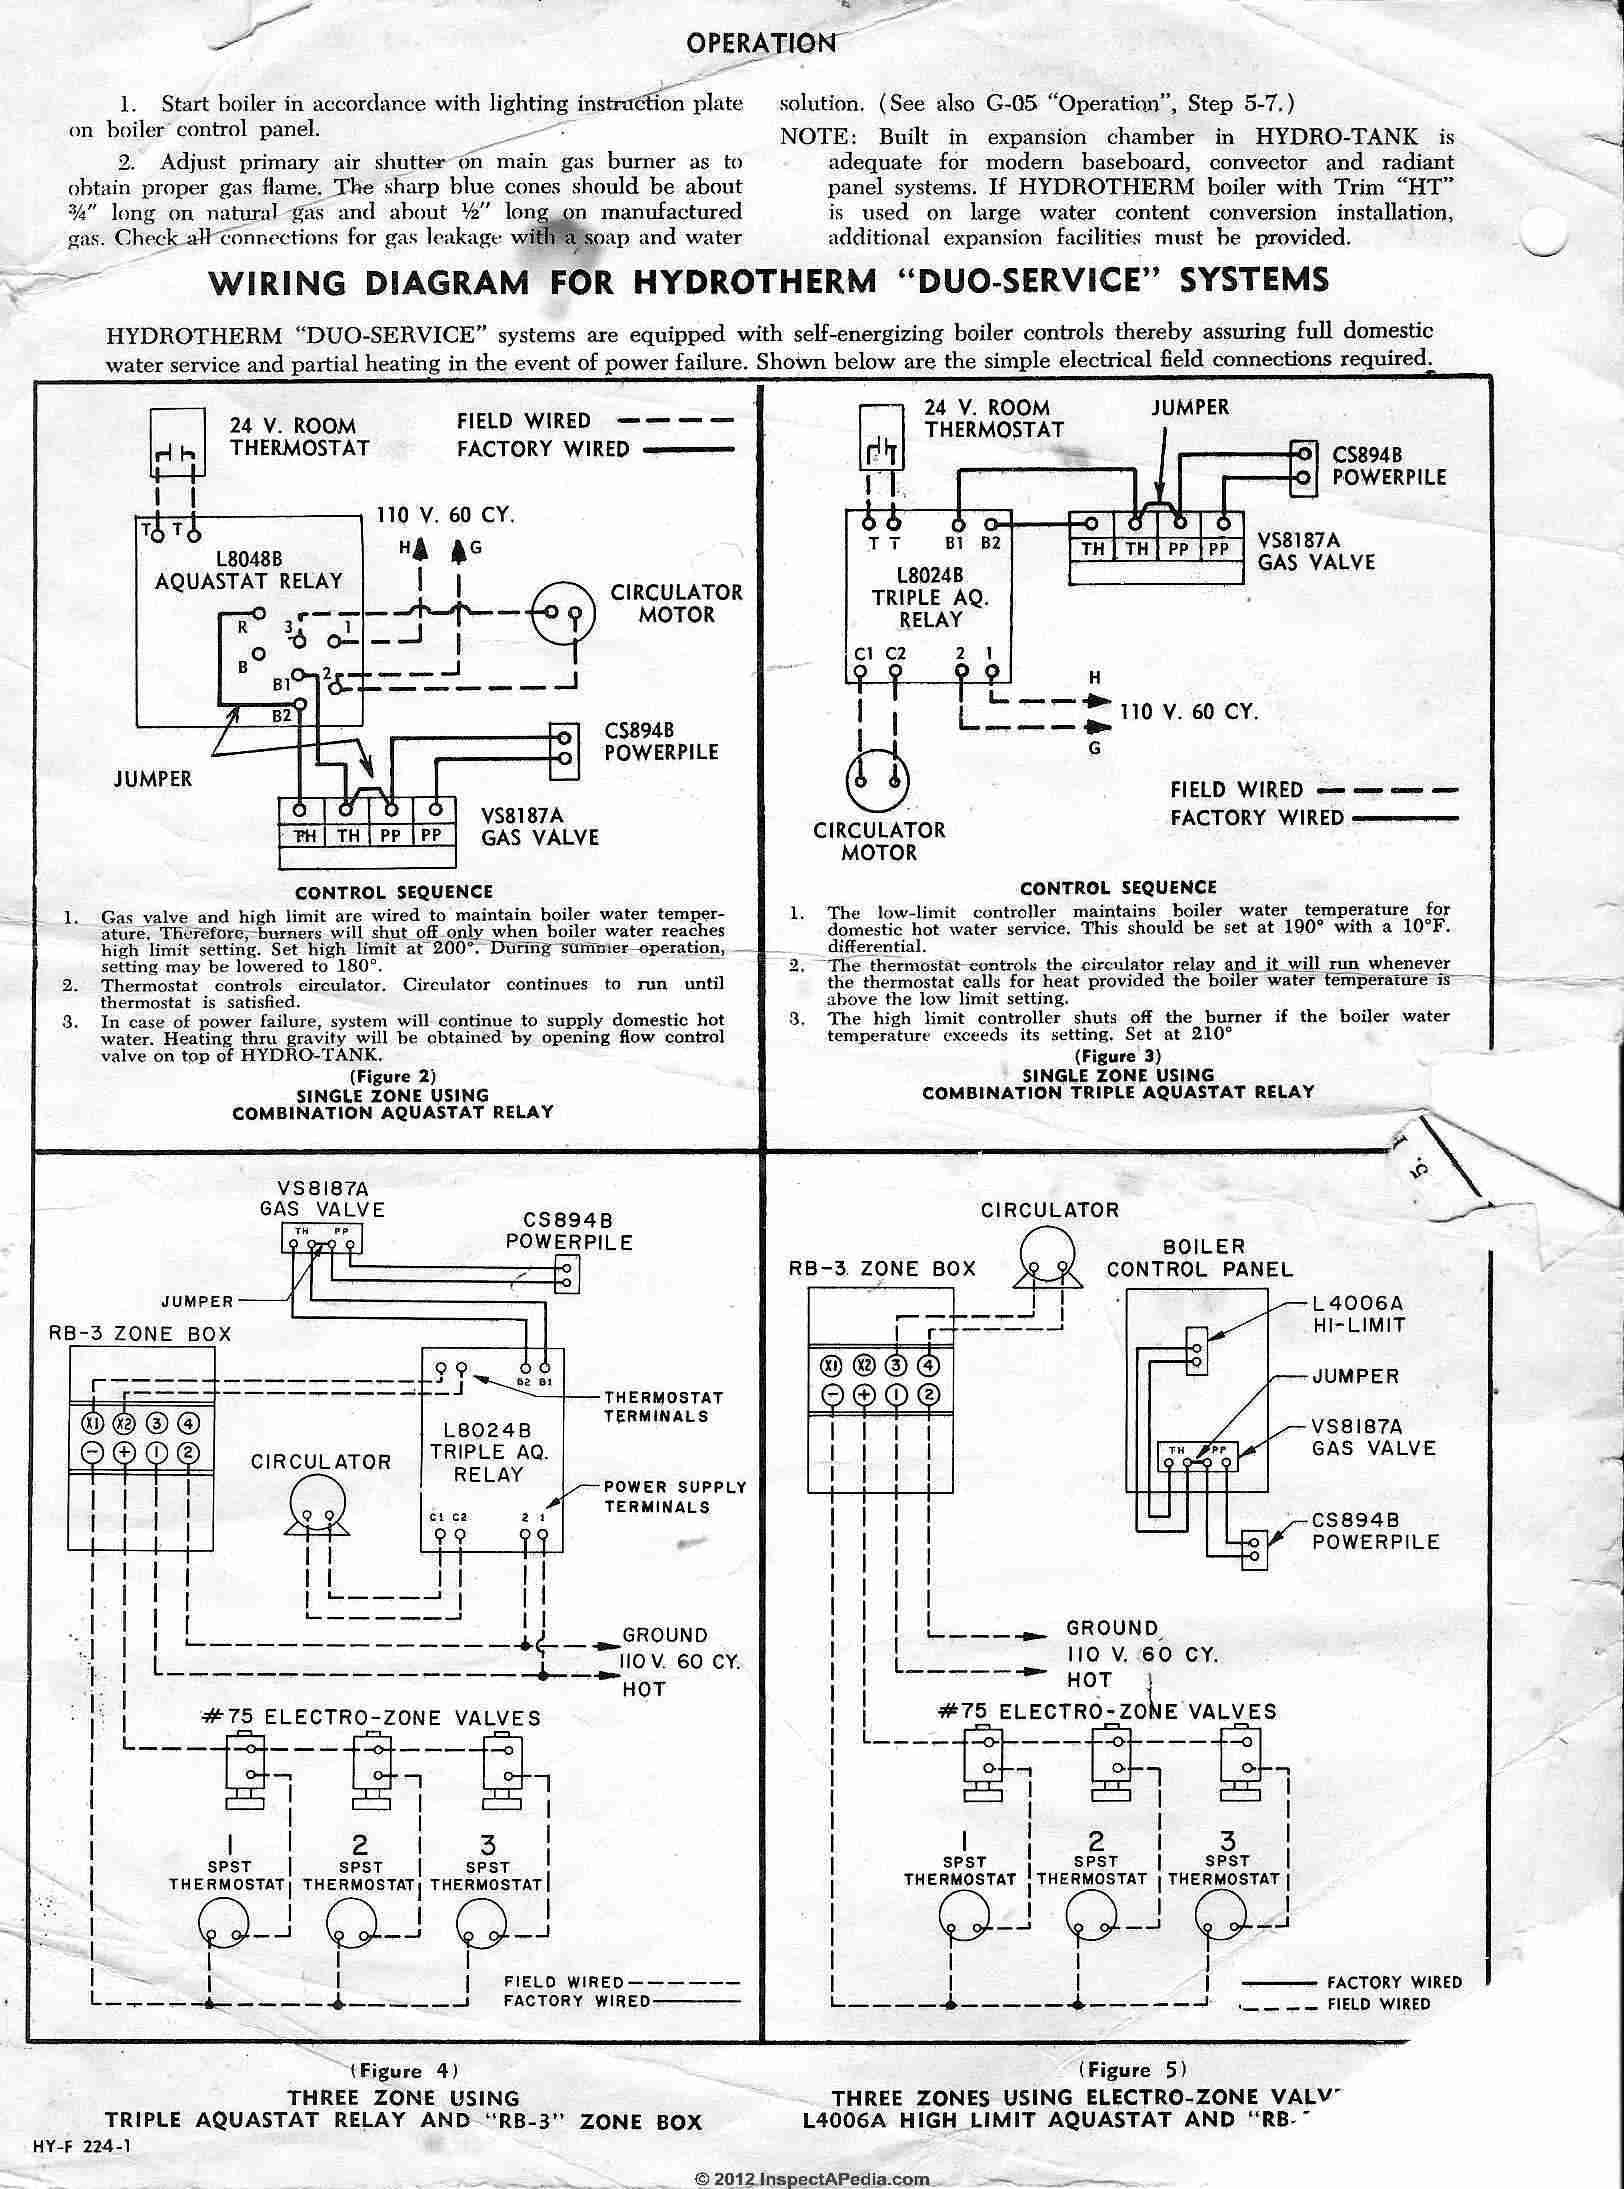 Heating Boiler Aquastat Control Diagnosis, Troubleshooting, Repair Honeywell  L8148A Aquastat Boiler Control Honeywell L7224 Aquastat Relay Wiring Diagram